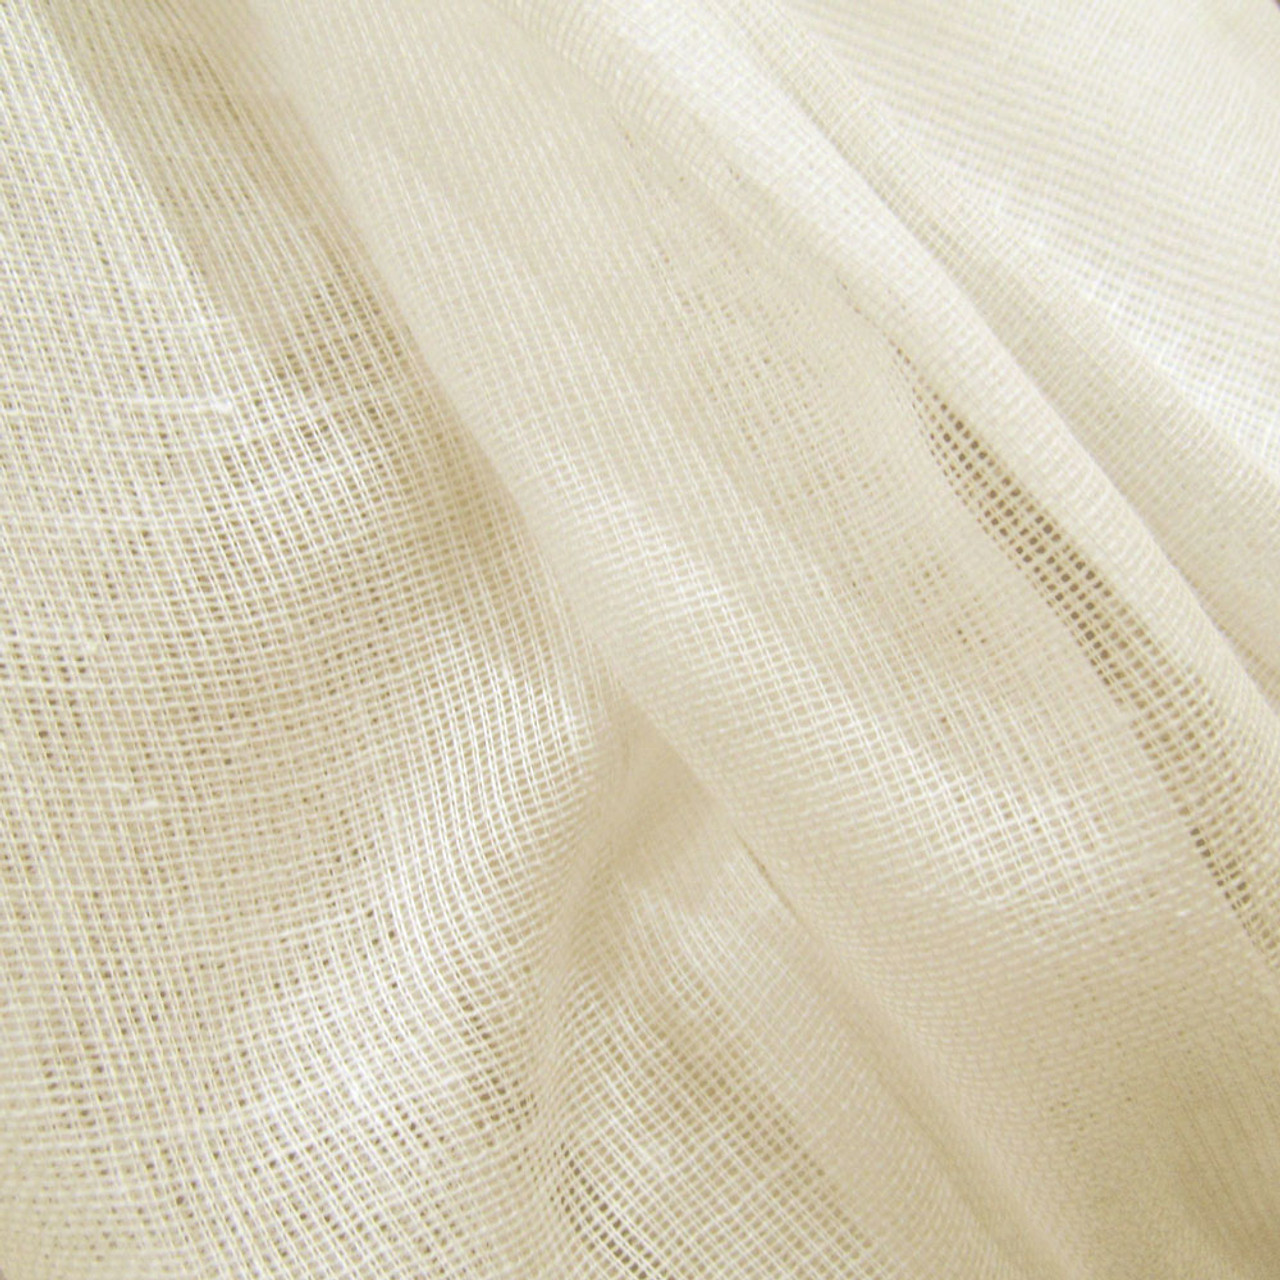 Unbleached Tobacco Cloth Cotton Fabric - Lightweight